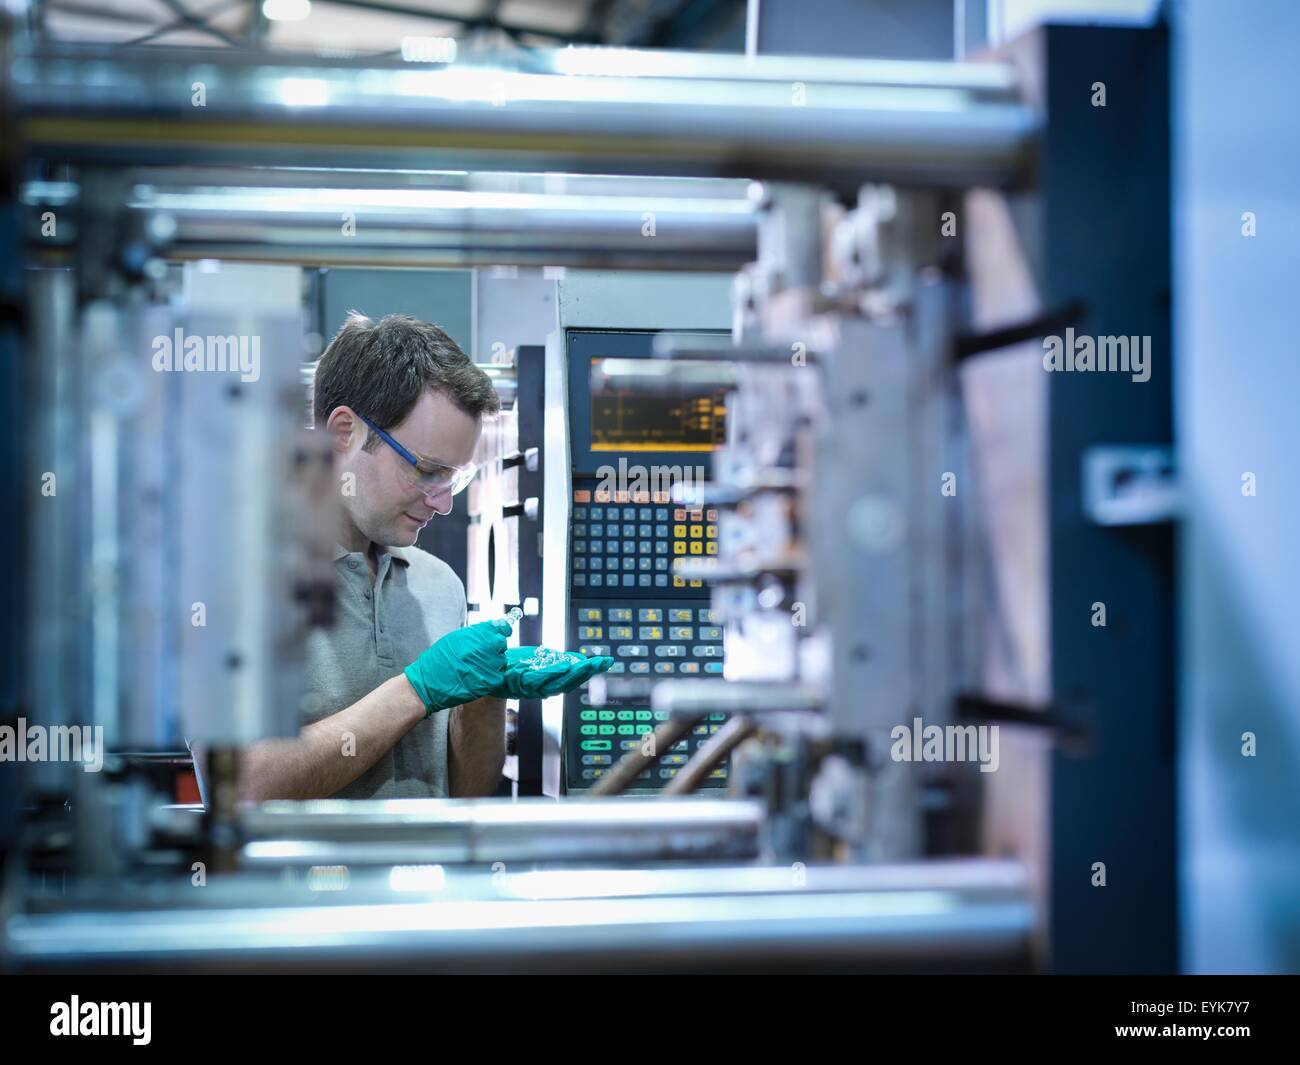 Worker inspecting parts from plastic injection moulding machine in plastics factory - Stock Image